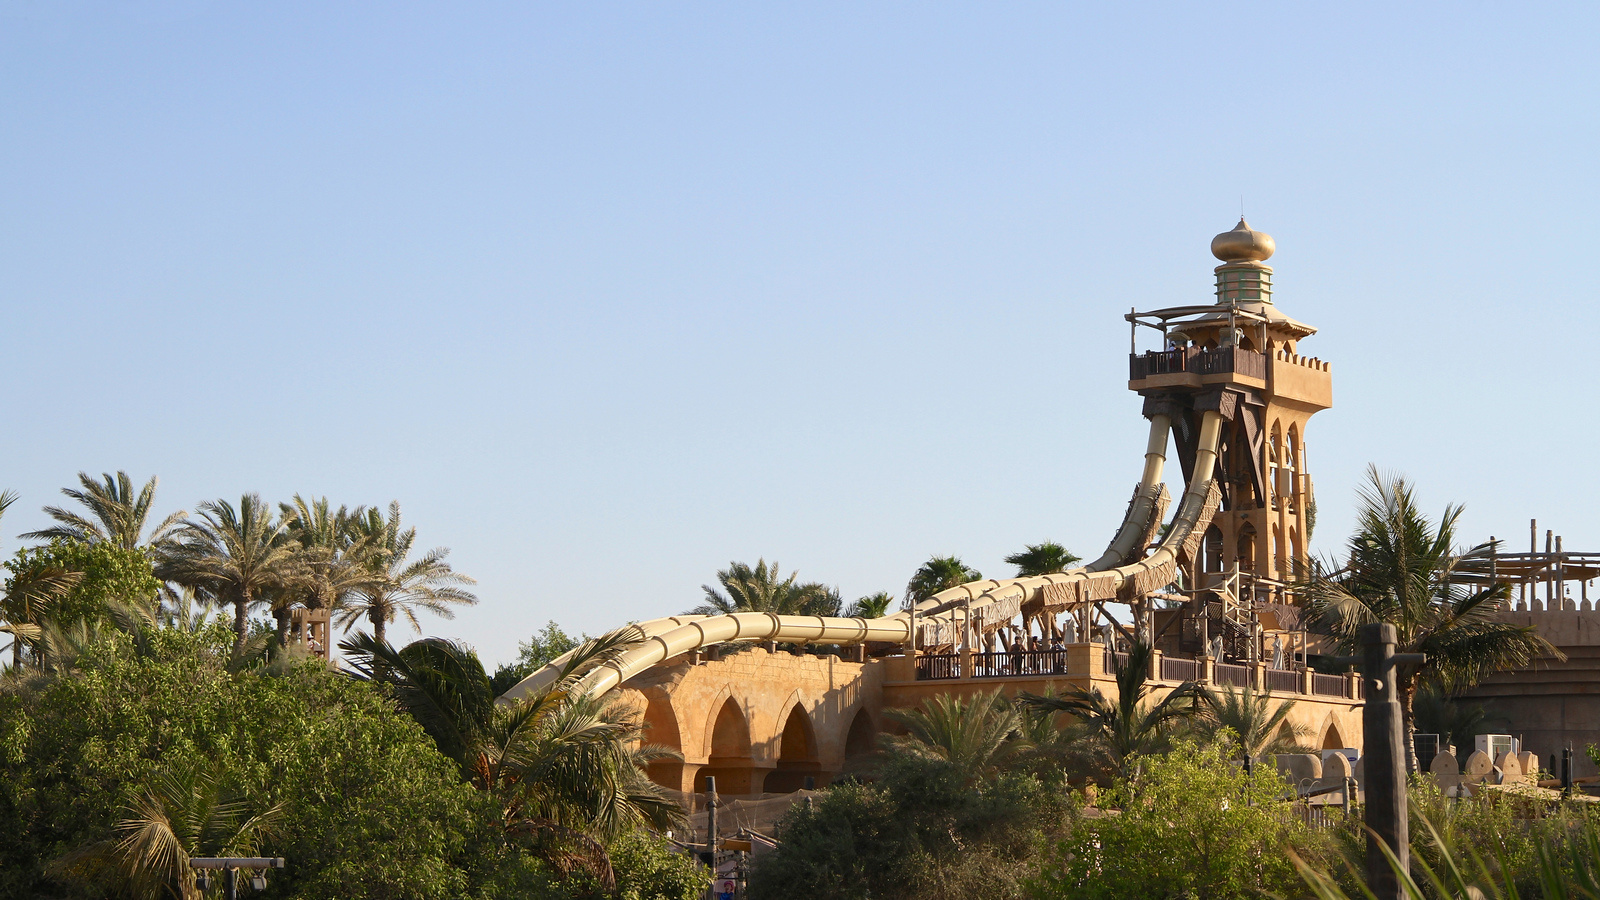 #15. Jumeirah Sceirah, Dubai - The World's 25 Scariest Waterslides… I'm Surprised #6 Is Even Legal.